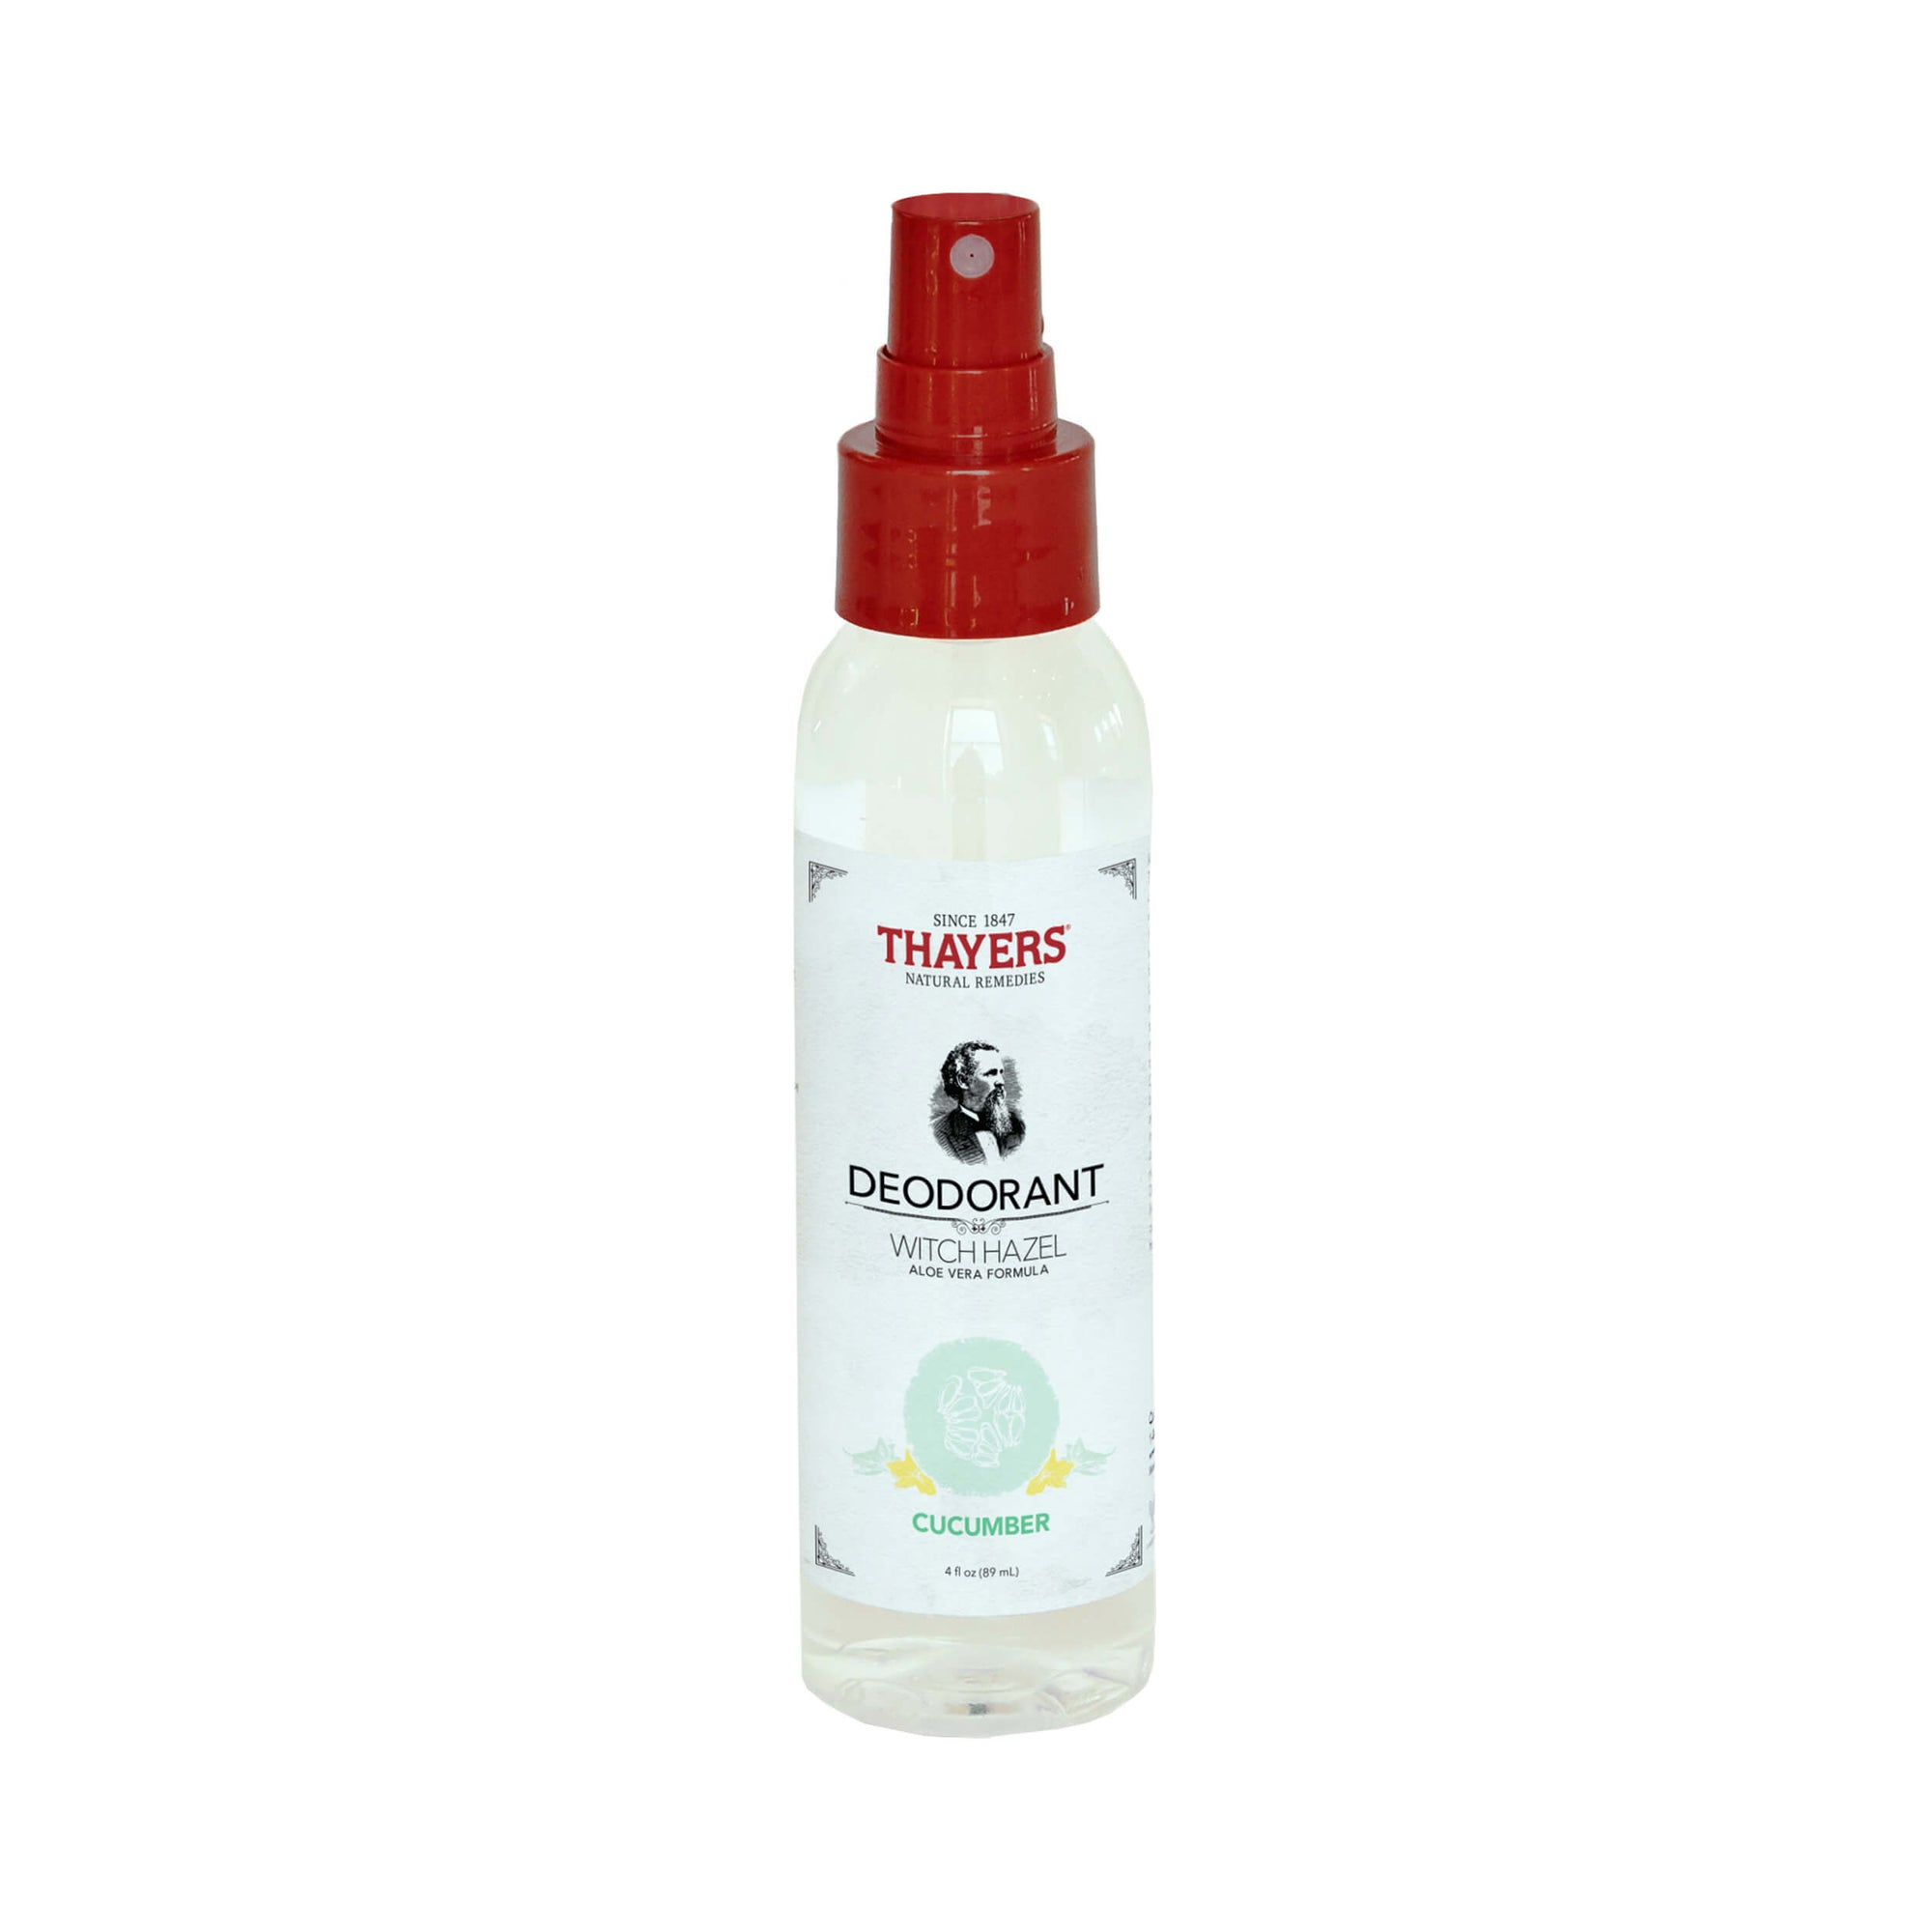 Thayers Witch Hazel Cucumber Deodorant 118 mL